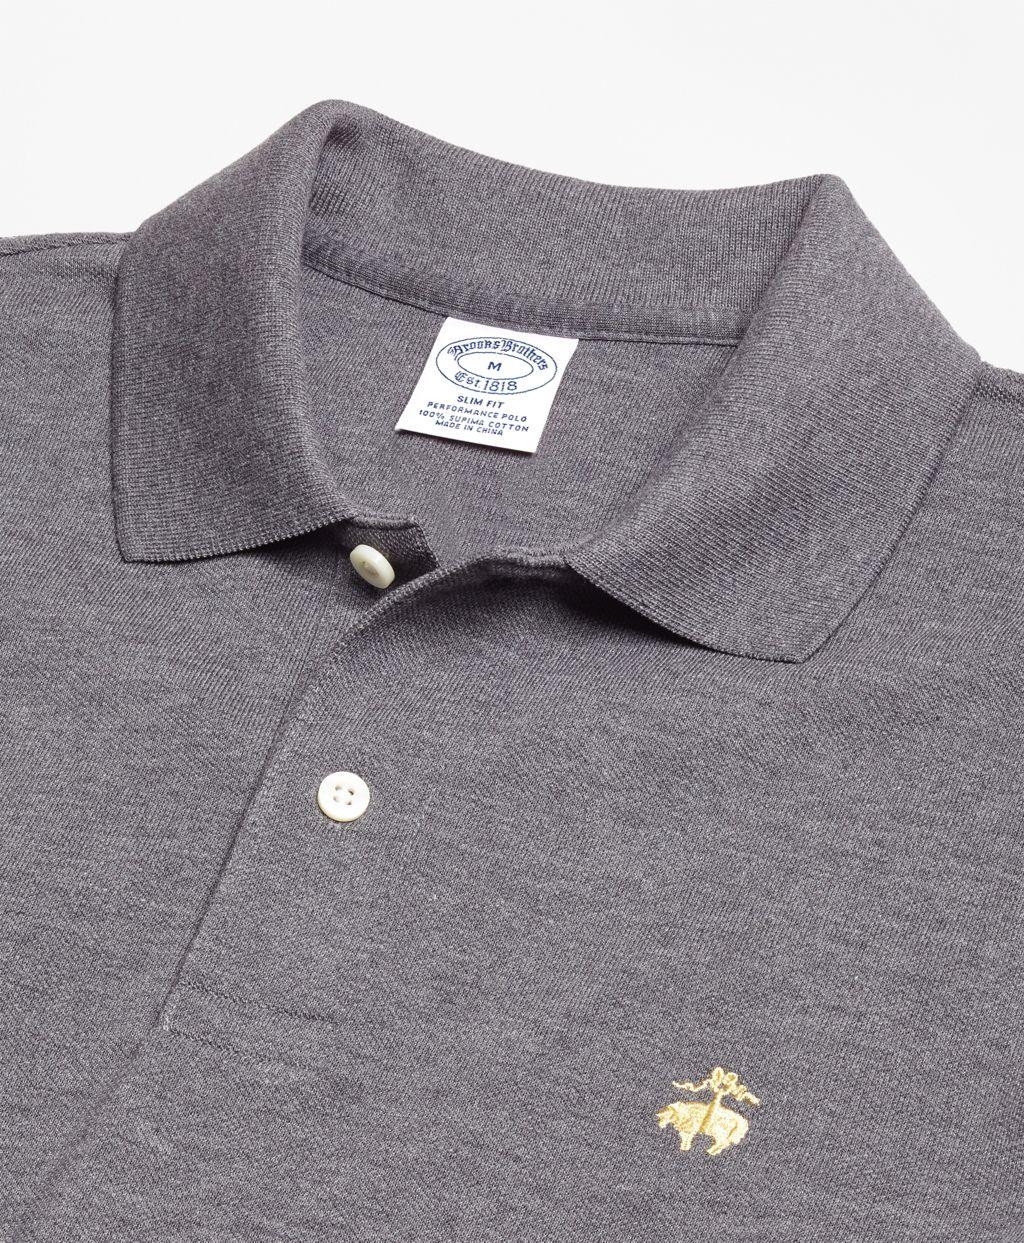 Brooks Brothers 1818 Original Fit Polo Men/'s